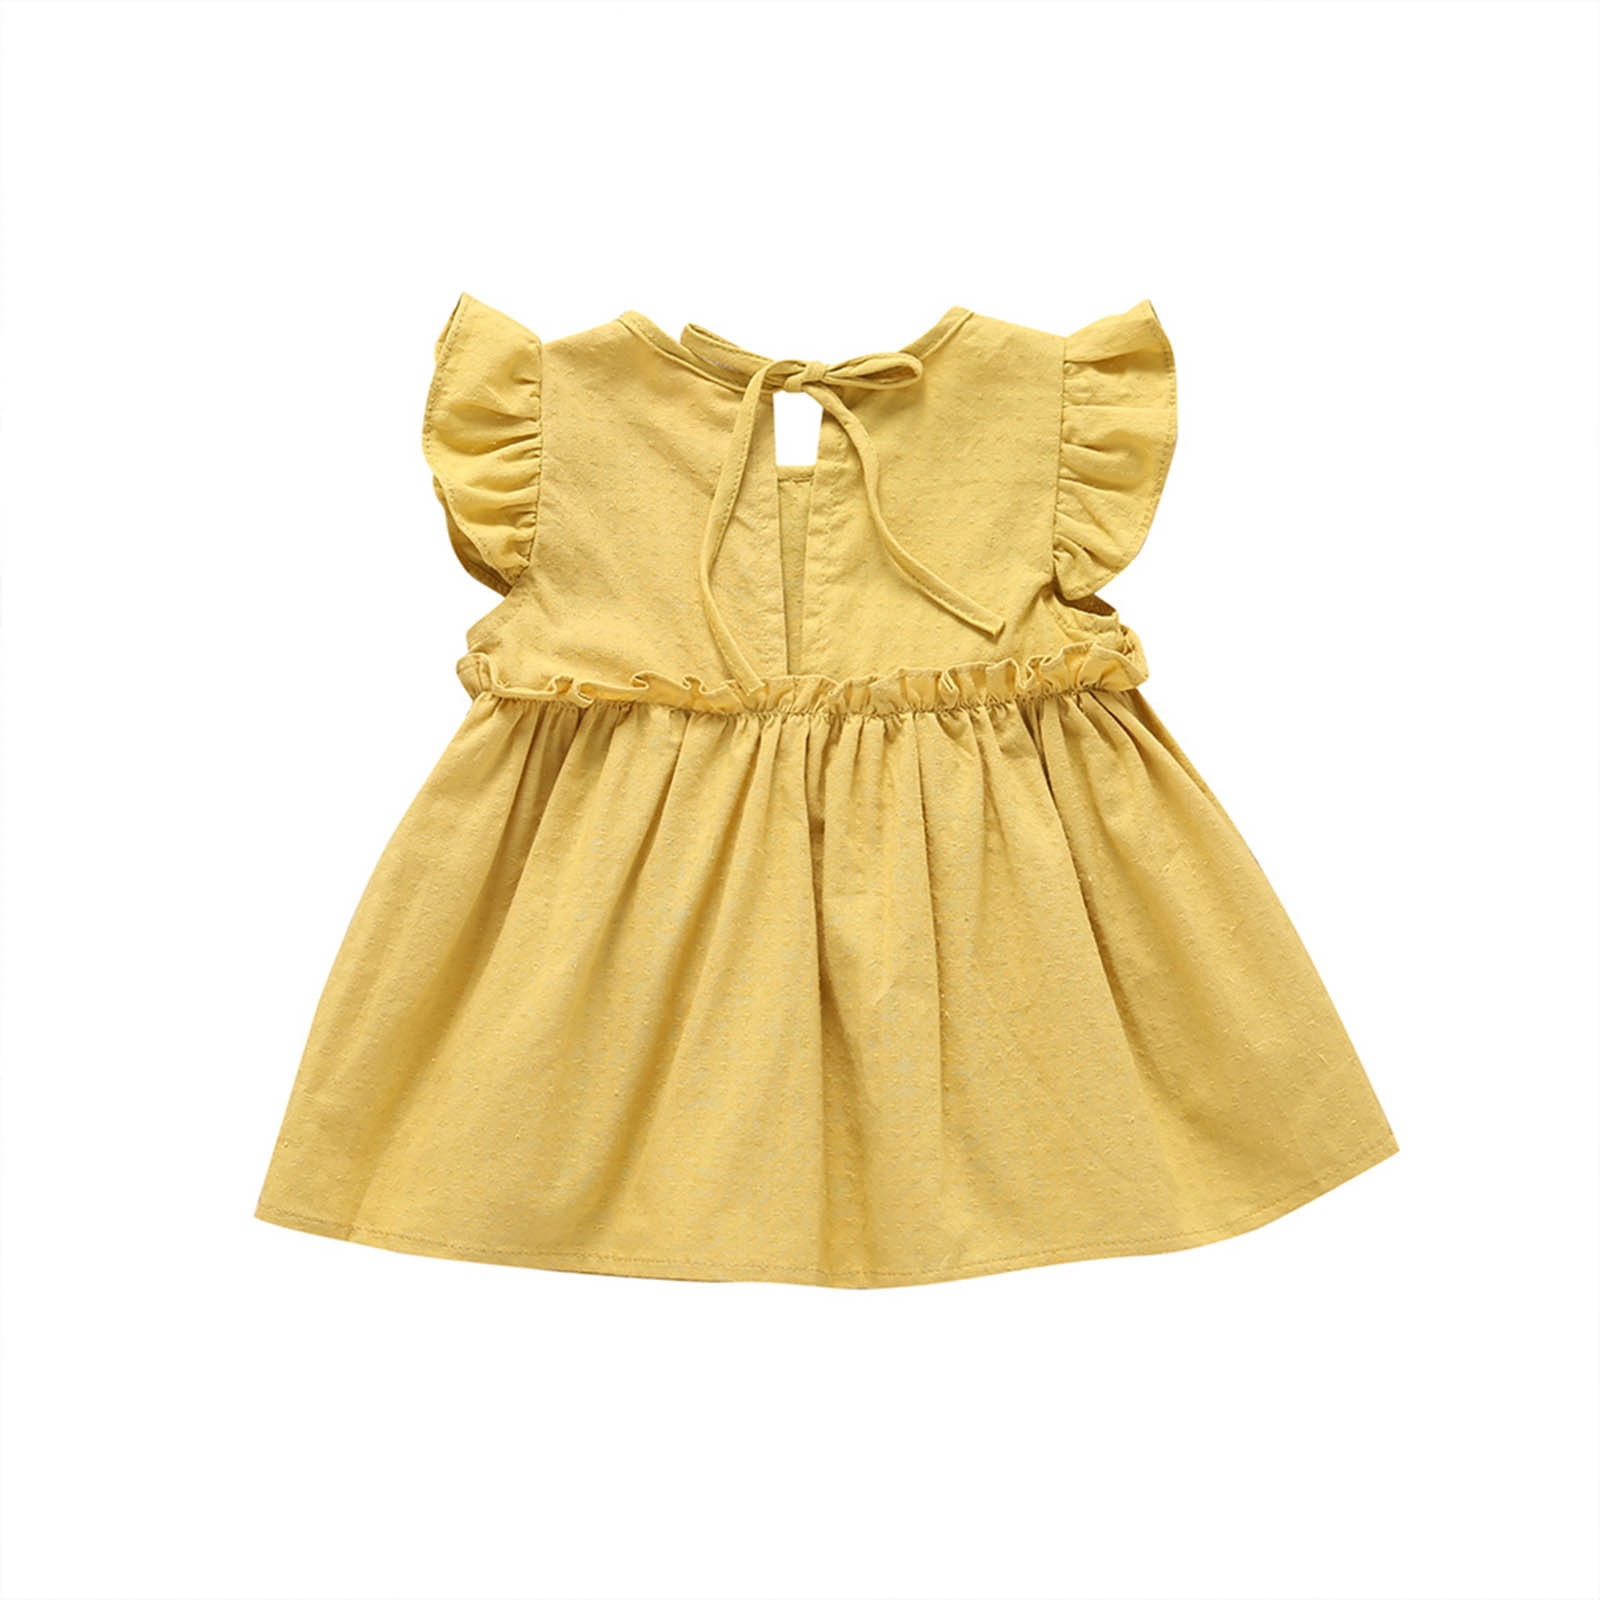 Girls Short Sleeve Flying Sleeve Solid Color Dress Princess Dress Baby Girls Solid Casual Ruffle Simplicity Dress Party Princess